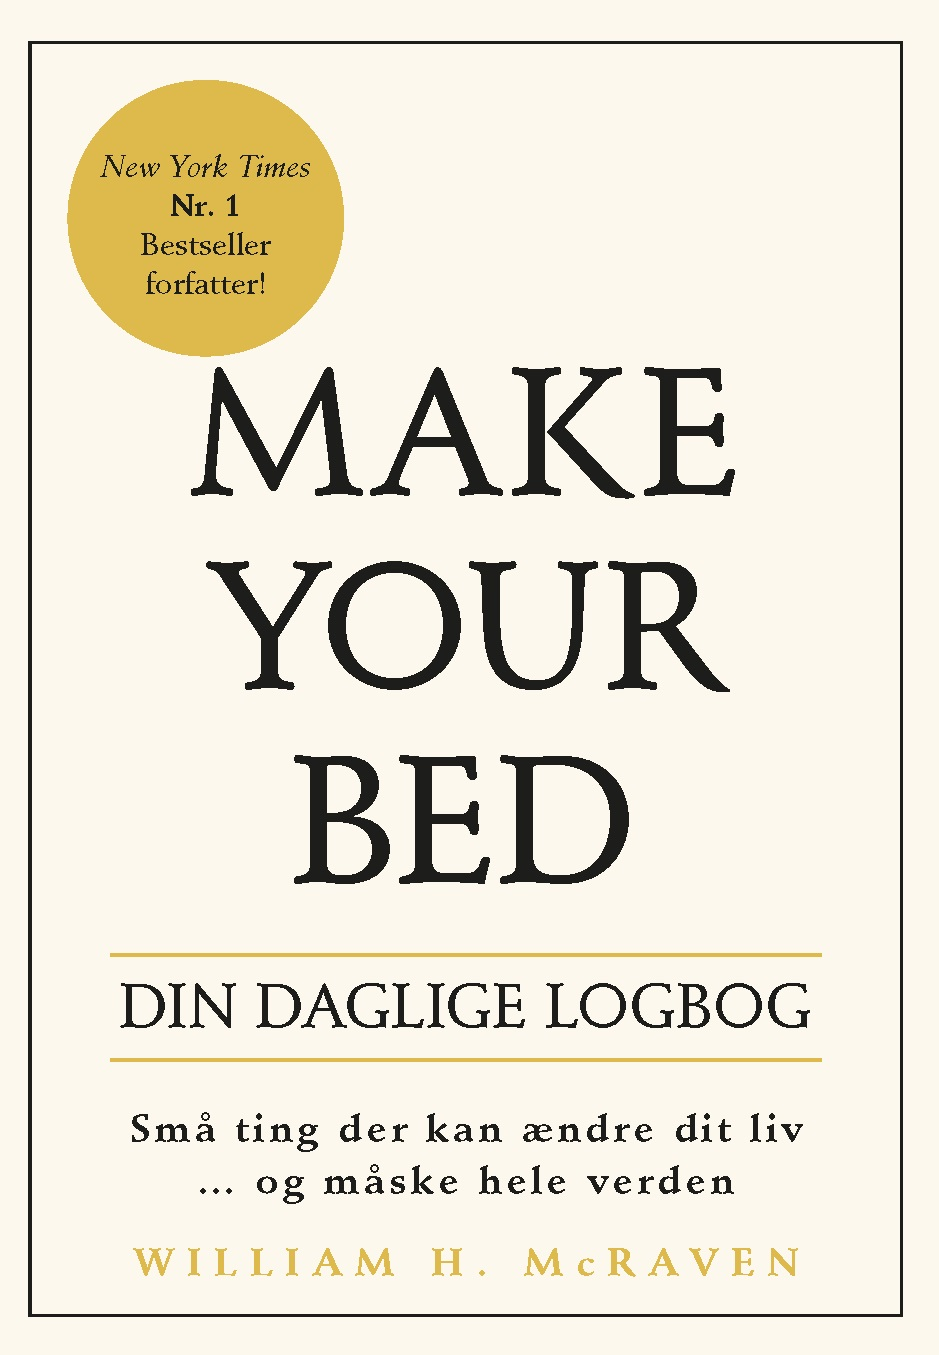 Make Your Bed - Din daglige logbog